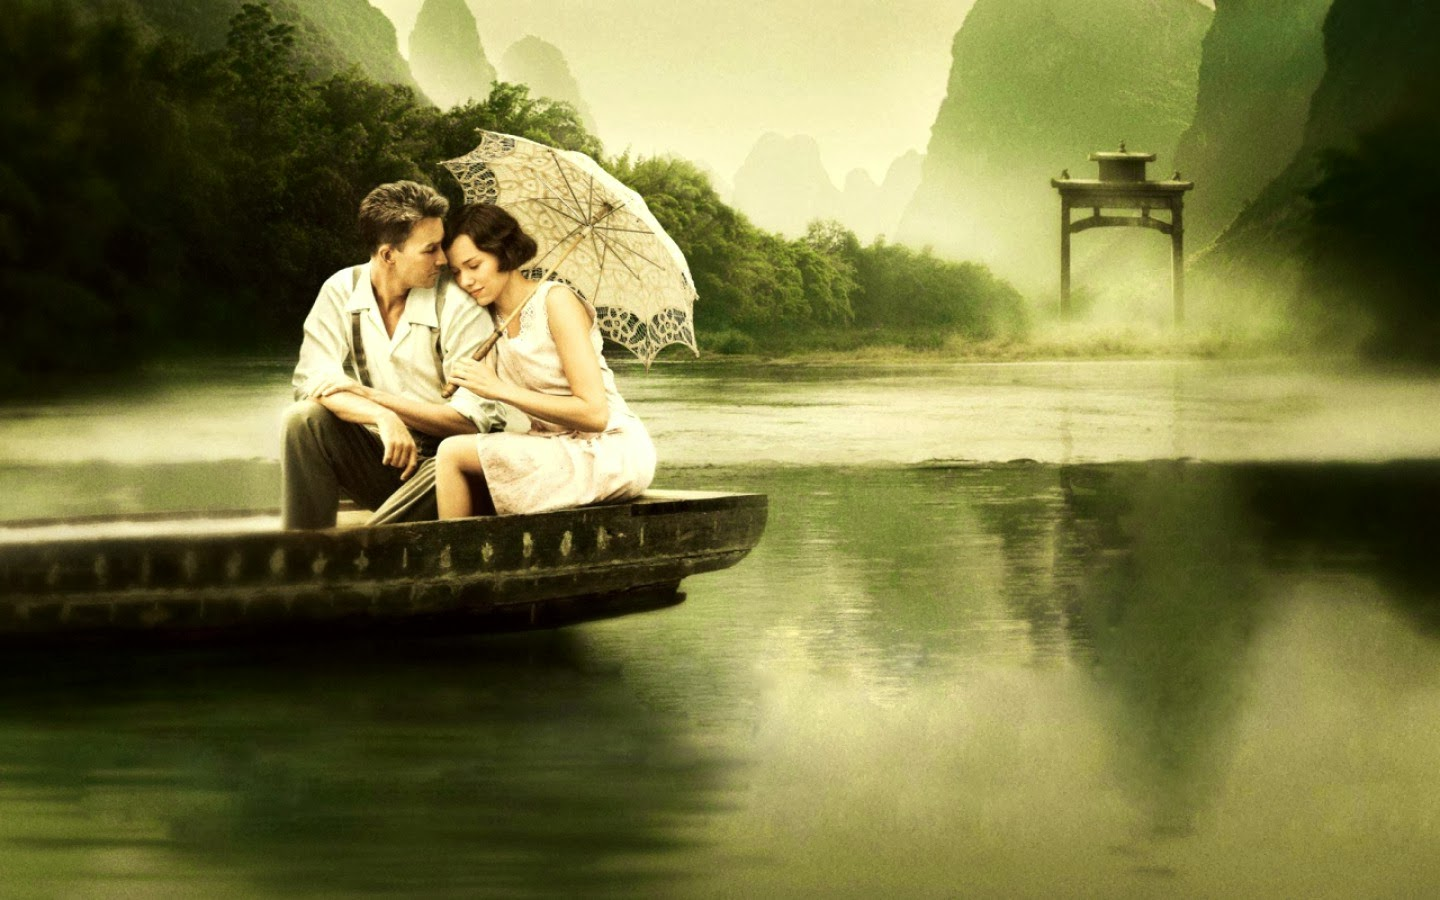 Beautiful Romantic Love Hd Wallpapers For Couples: Missing Beats Of Life: Romantic Couple HD Wallpaper And Image